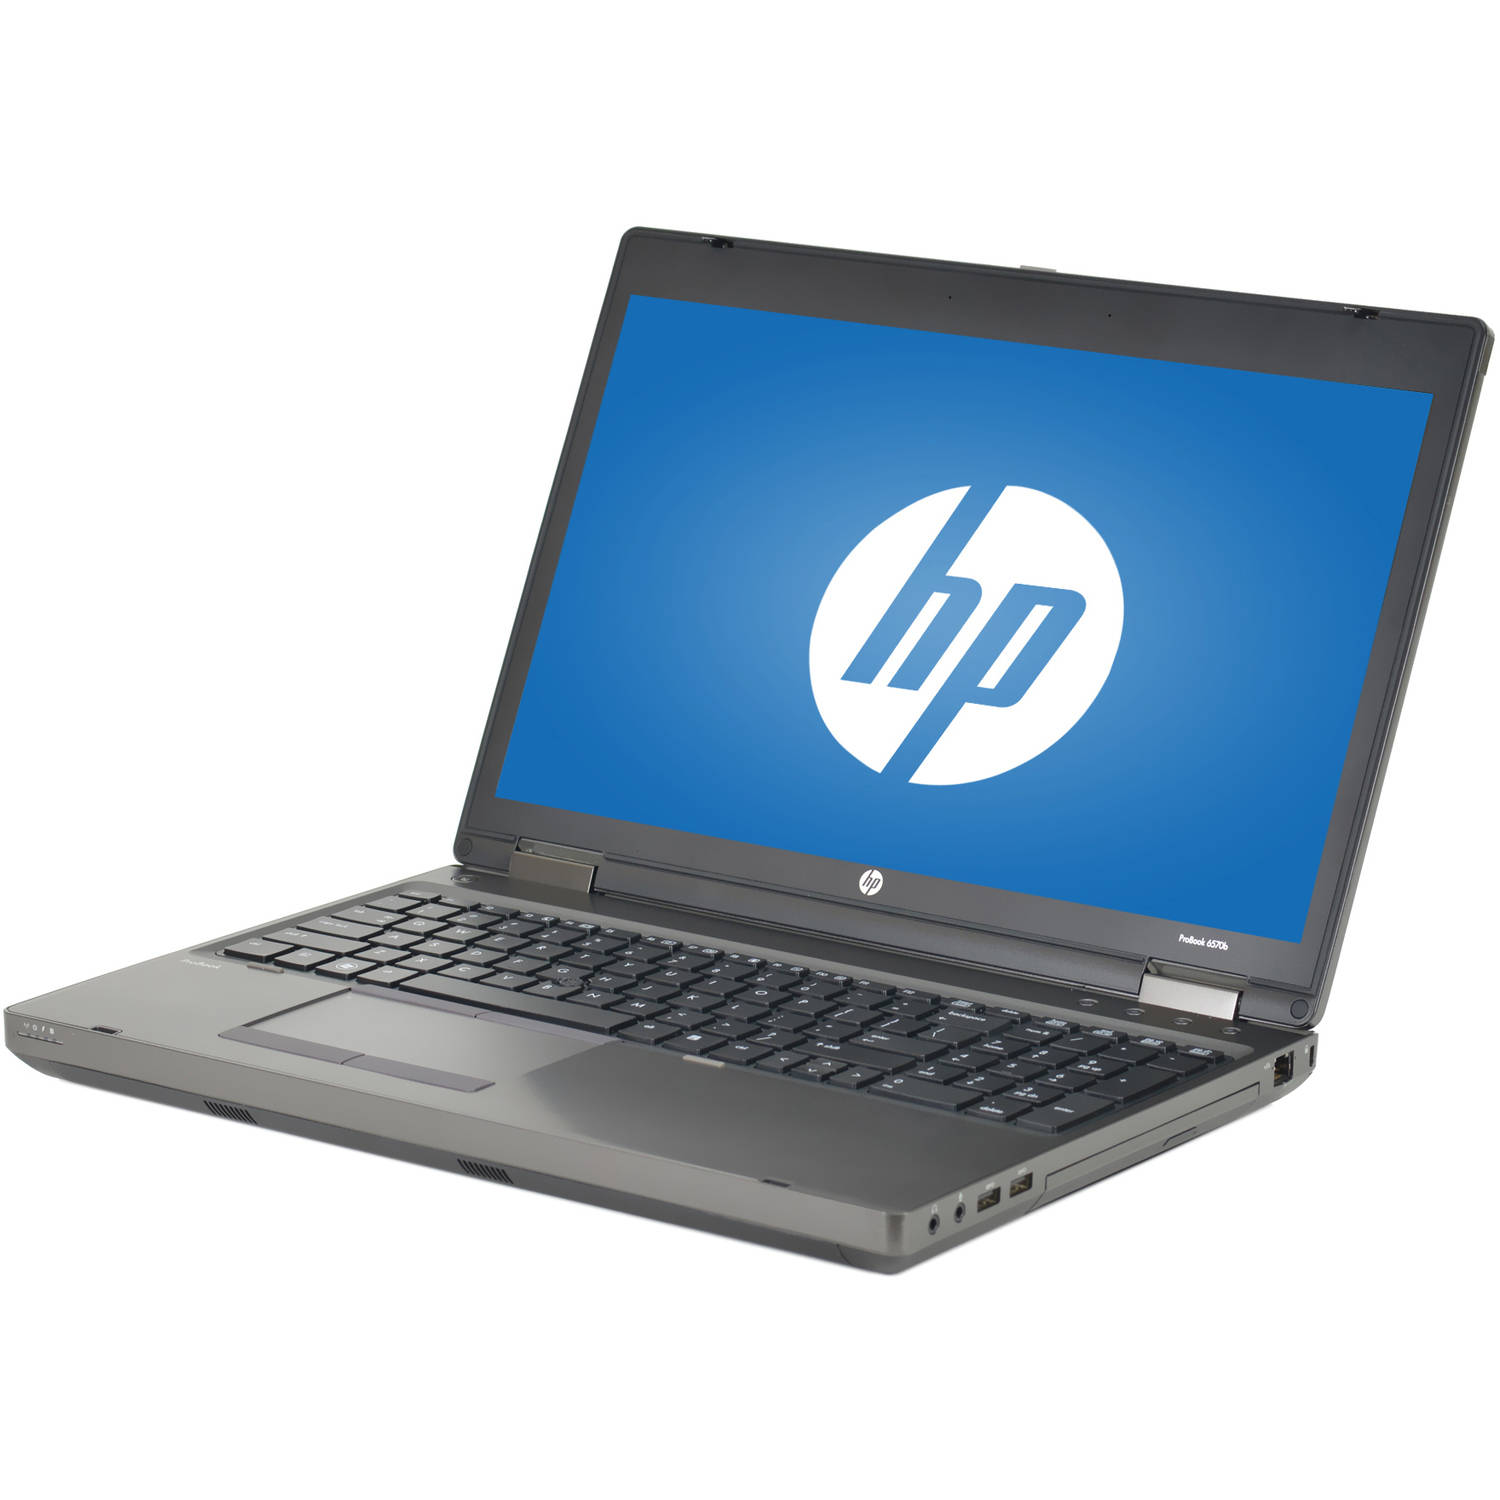 "Refurbished HP 15.6"" ProBook 6570B WA5-0877 Laptop PC with Intel Core i5-3320M Processor, 8GB Memory, 128GB Solid State Drive and Windows 10 Pro"